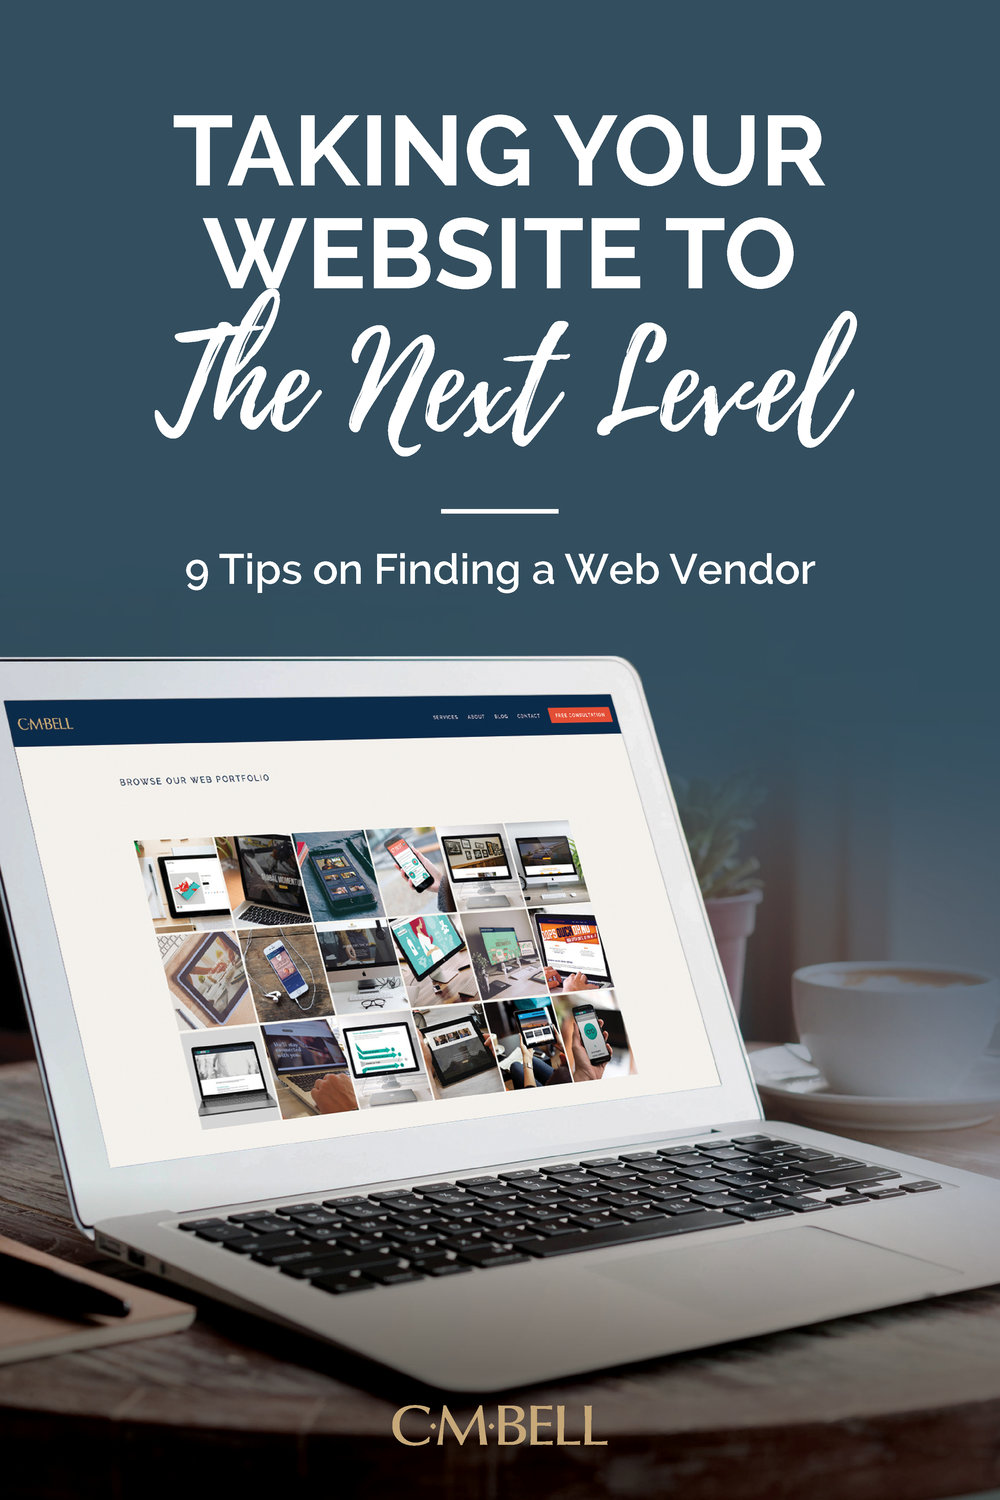 taking-your-website-to-the-next-level-9-tips-on-finding-a-web-vendor.jpg